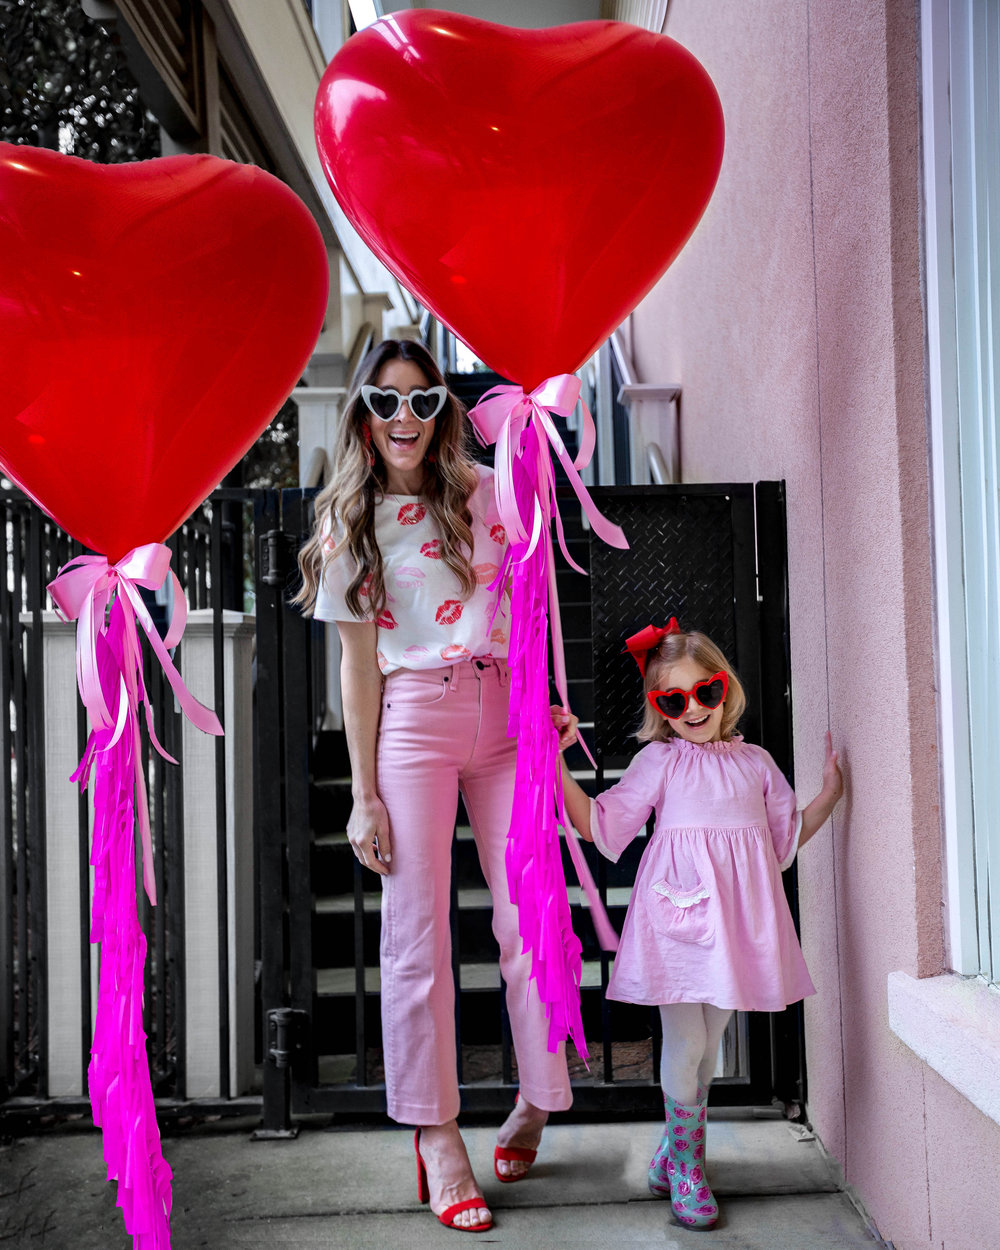 VALEntiNE'S DAY GIFT IDEAS FOR ALL - Valentine's Day is such a sweet holiday! It's hard not to gift all of the people close to your heart a little something something! I have rounded up all of my favorite gifts to give everyone close to your heart this Valetine's Day!